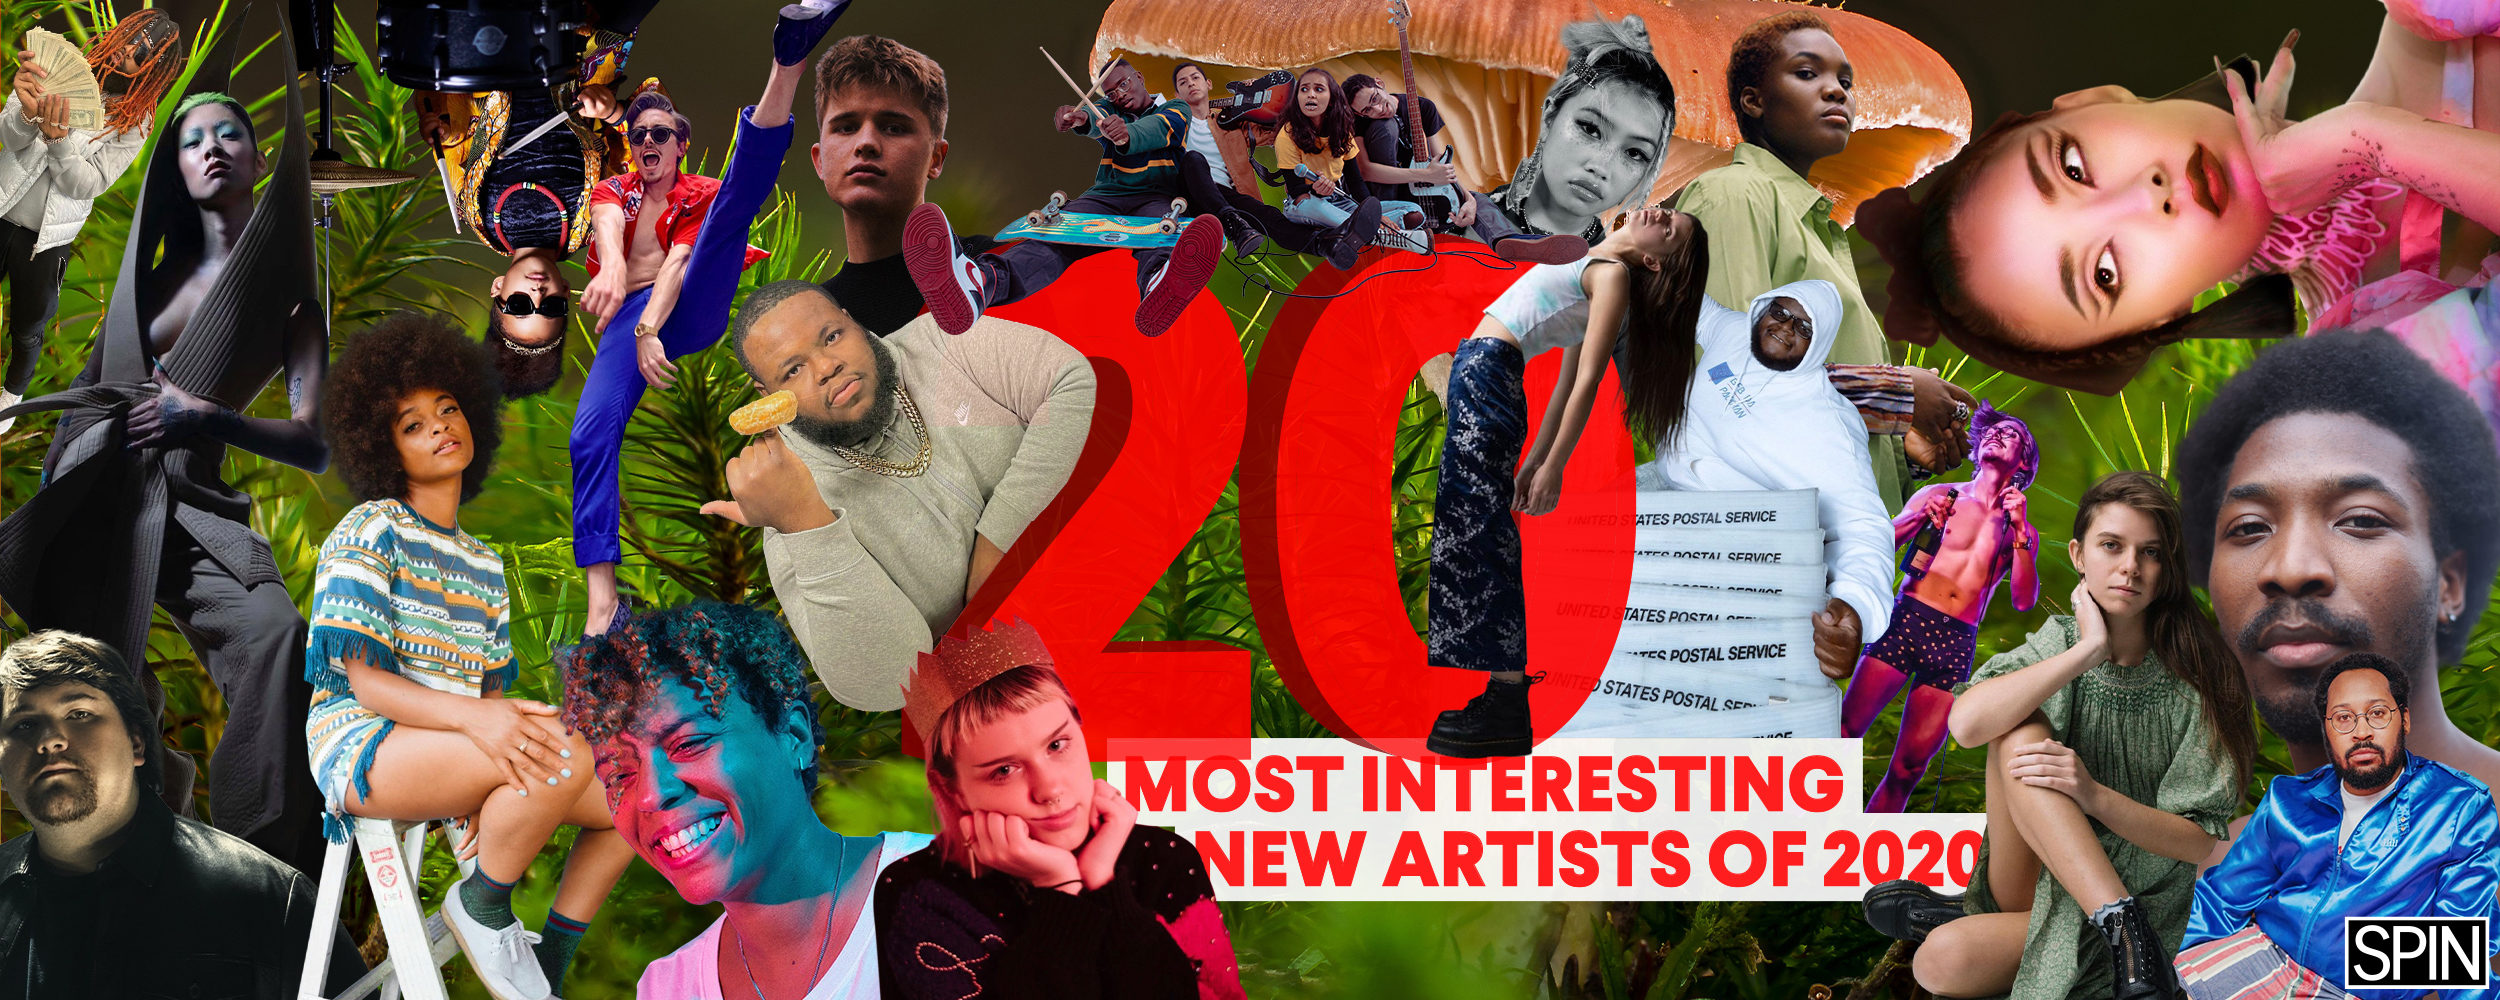 The 20 Most Interesting New Artists of 2020